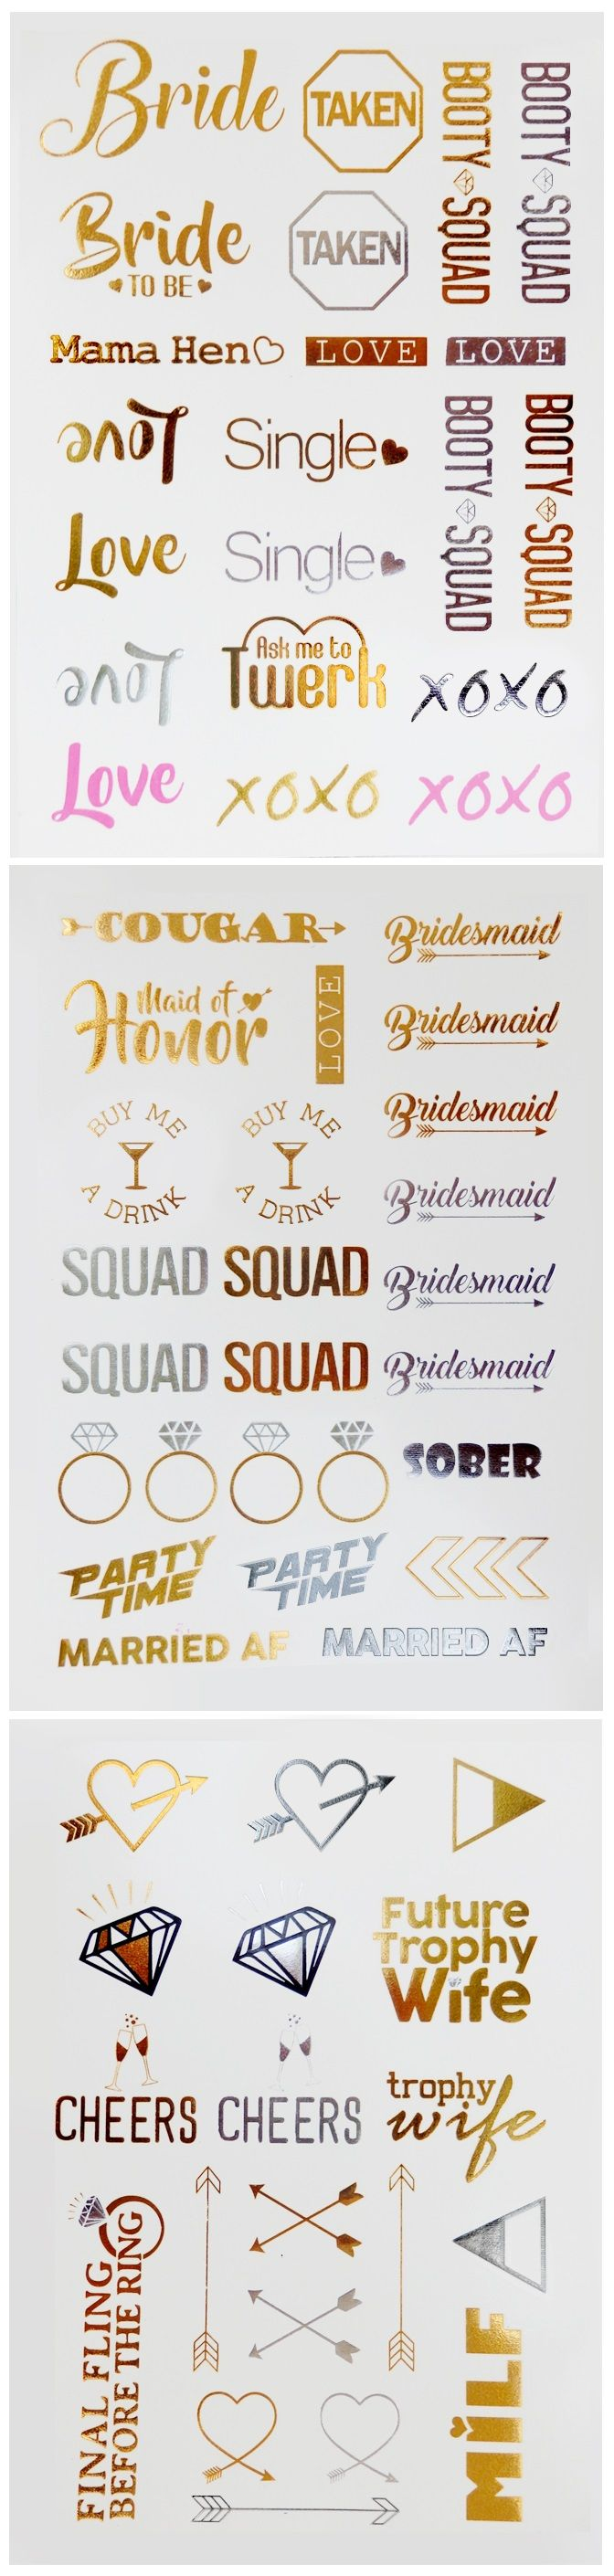 Enter Promo Code: SJC20 to save 20% Off your Bachelorette Party Flash Tattoos!